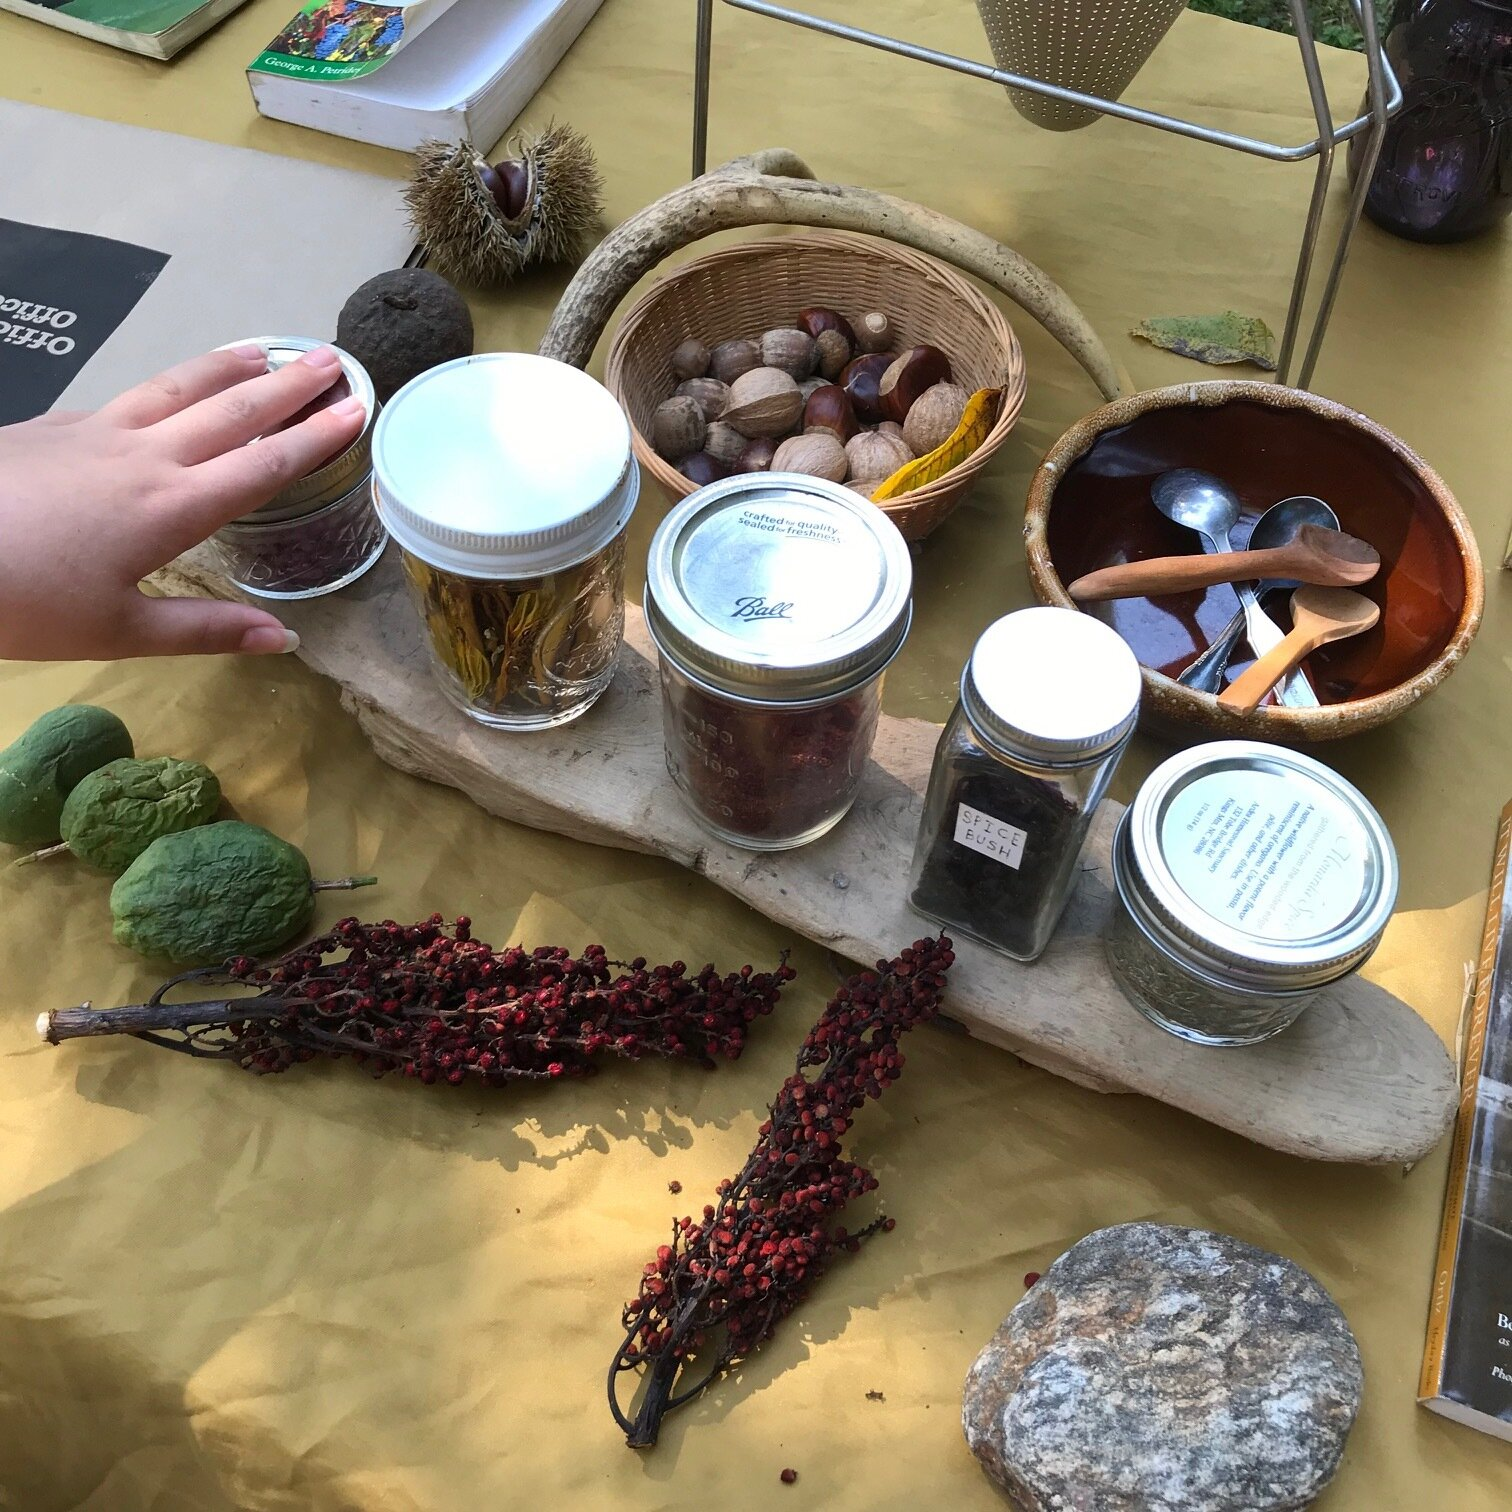 From  Eating the Wild: a foraging primer and plant walk , Sunday, September 22 in Matthews.